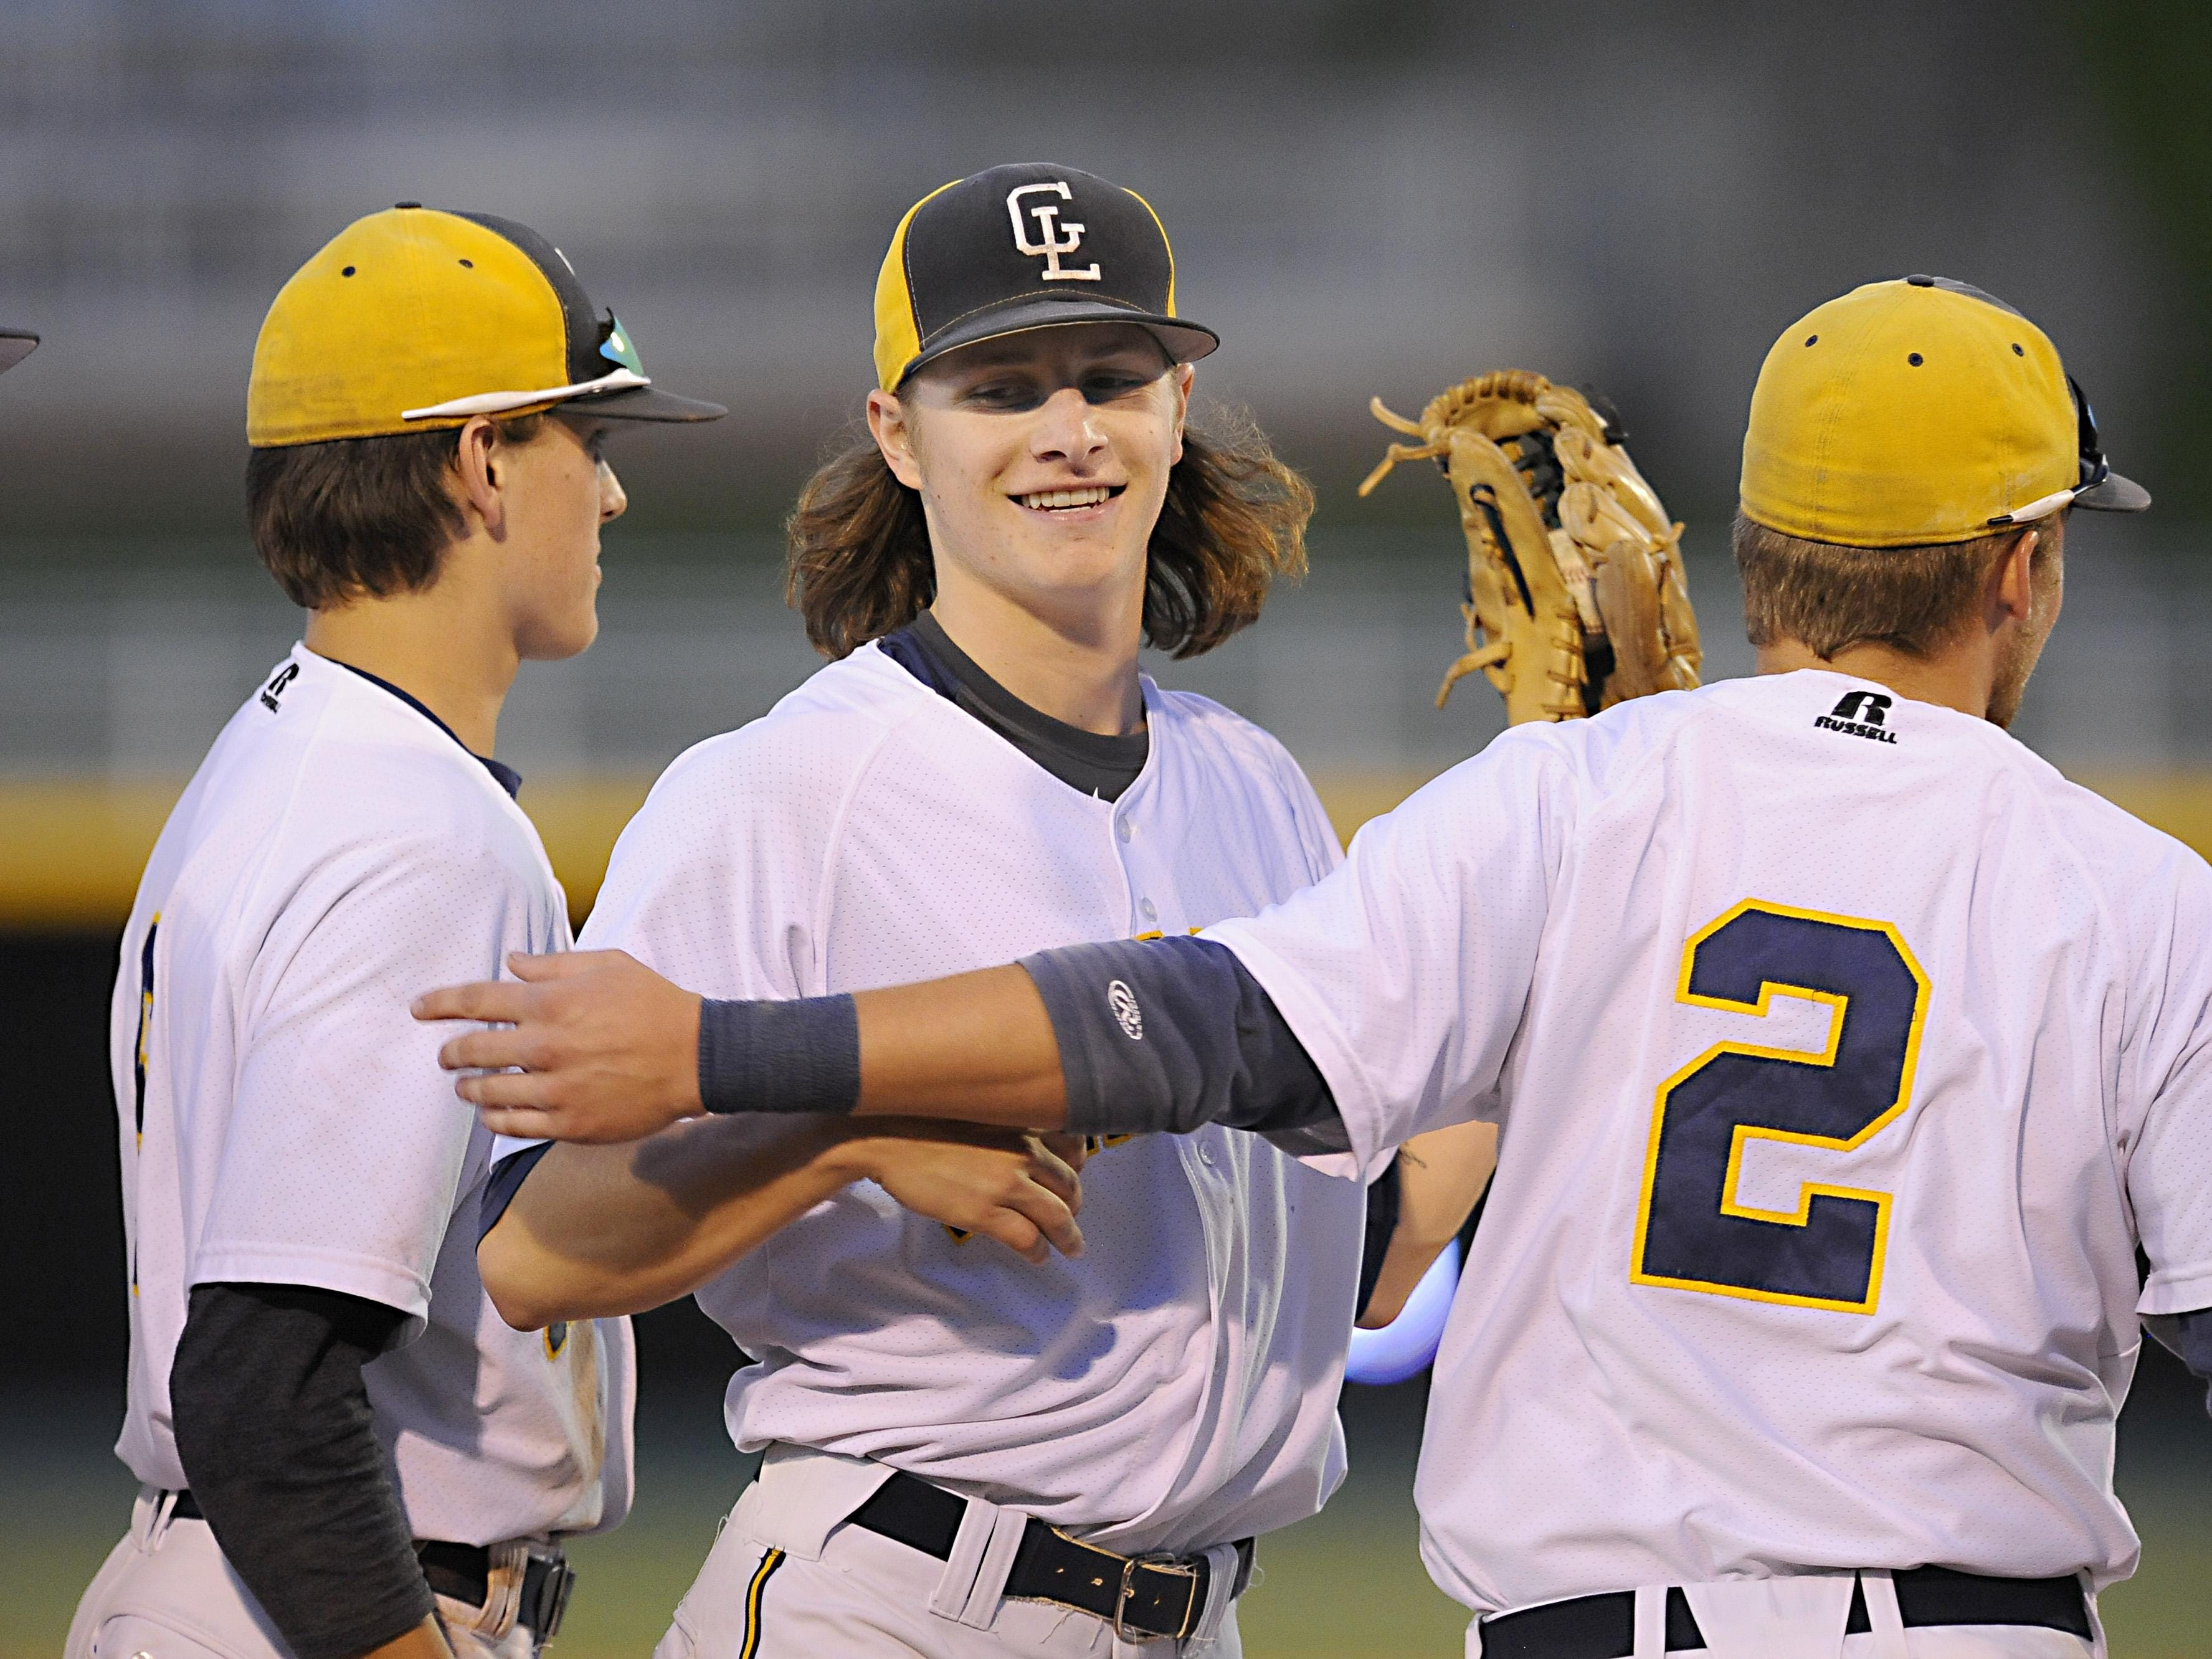 Grand Ledge pitcher Tyler Waldrop, center, facing camera, gets hugs from teammates after his complete game victory in the Diamond Classic Championship game over St. Johns Tuesday 6/2/2015.